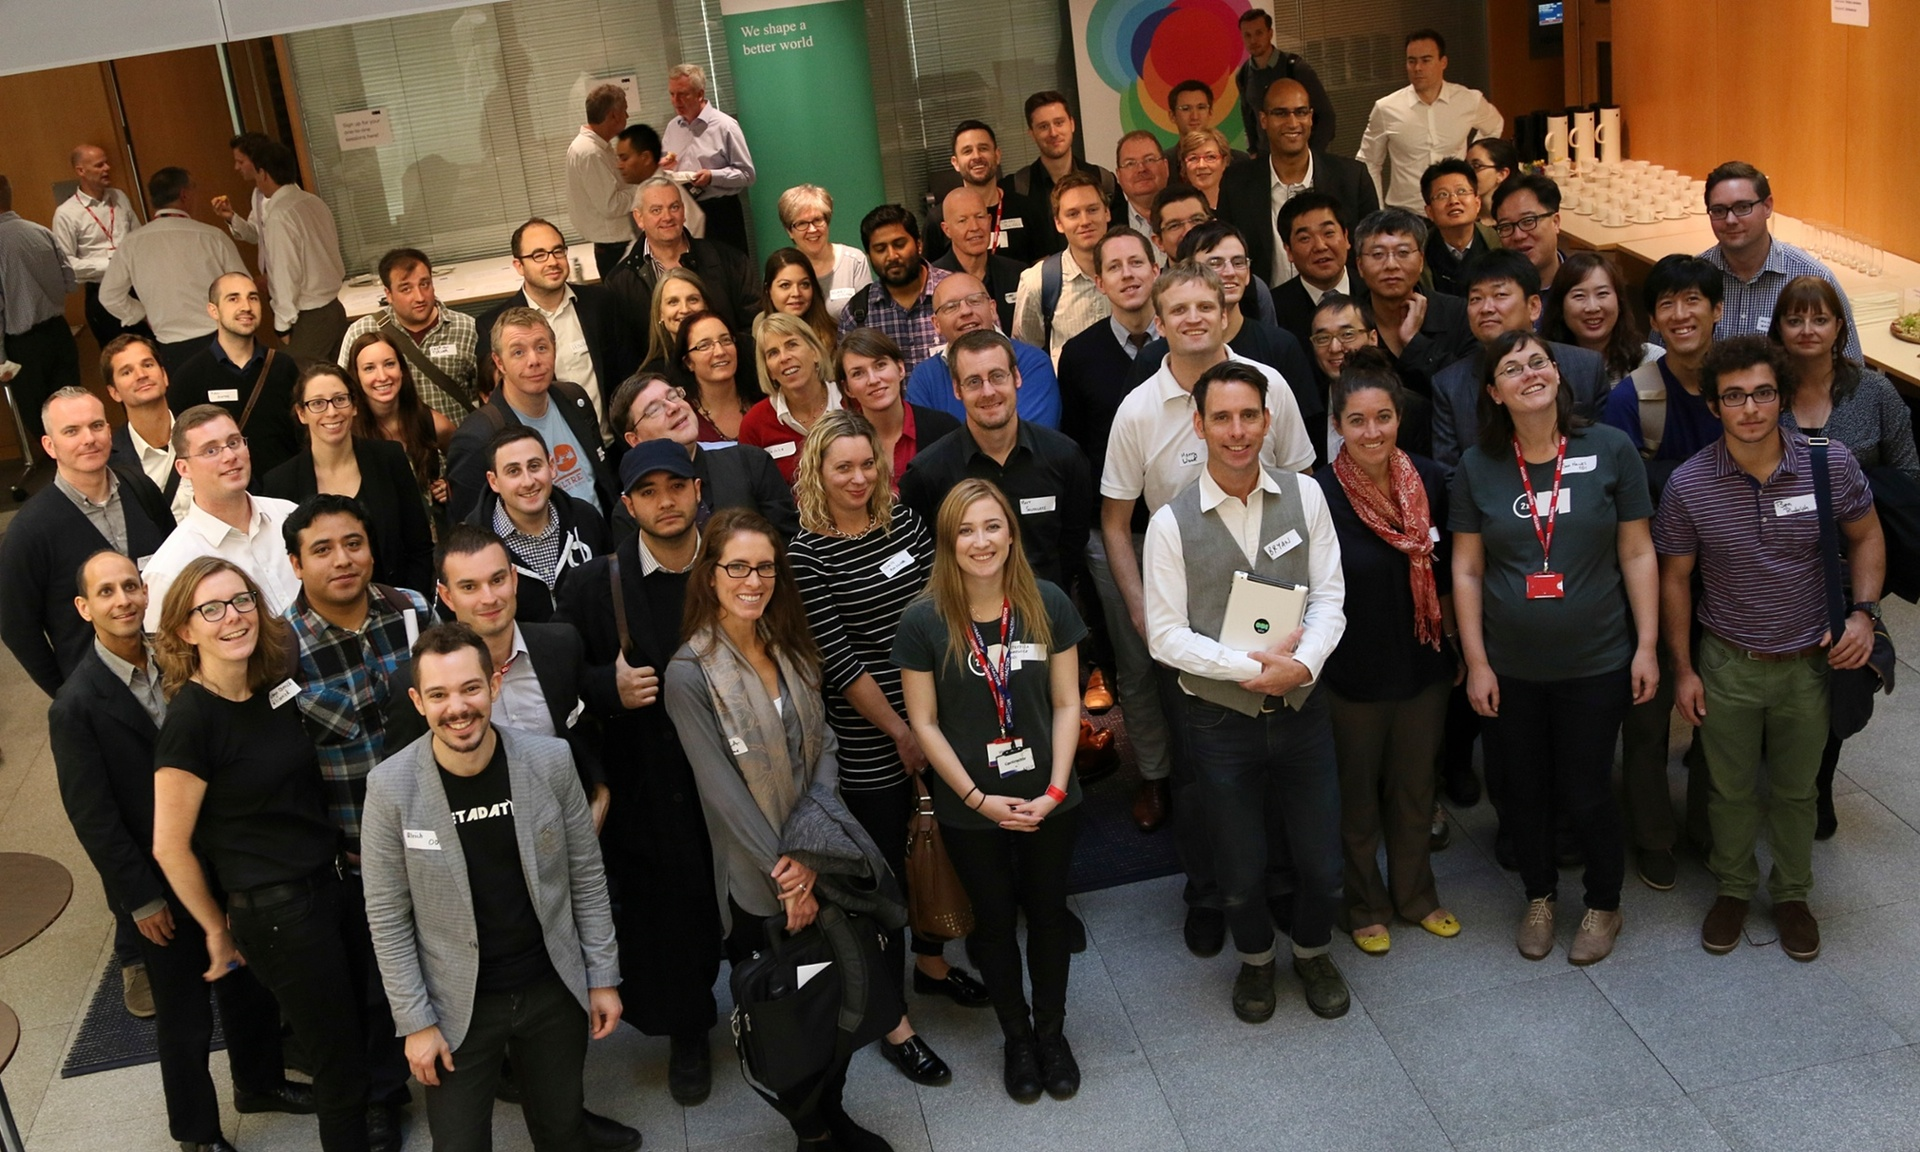 The ODI summit 2014. Photograph: Open Data Institute Knowledge for Everyone/flickr